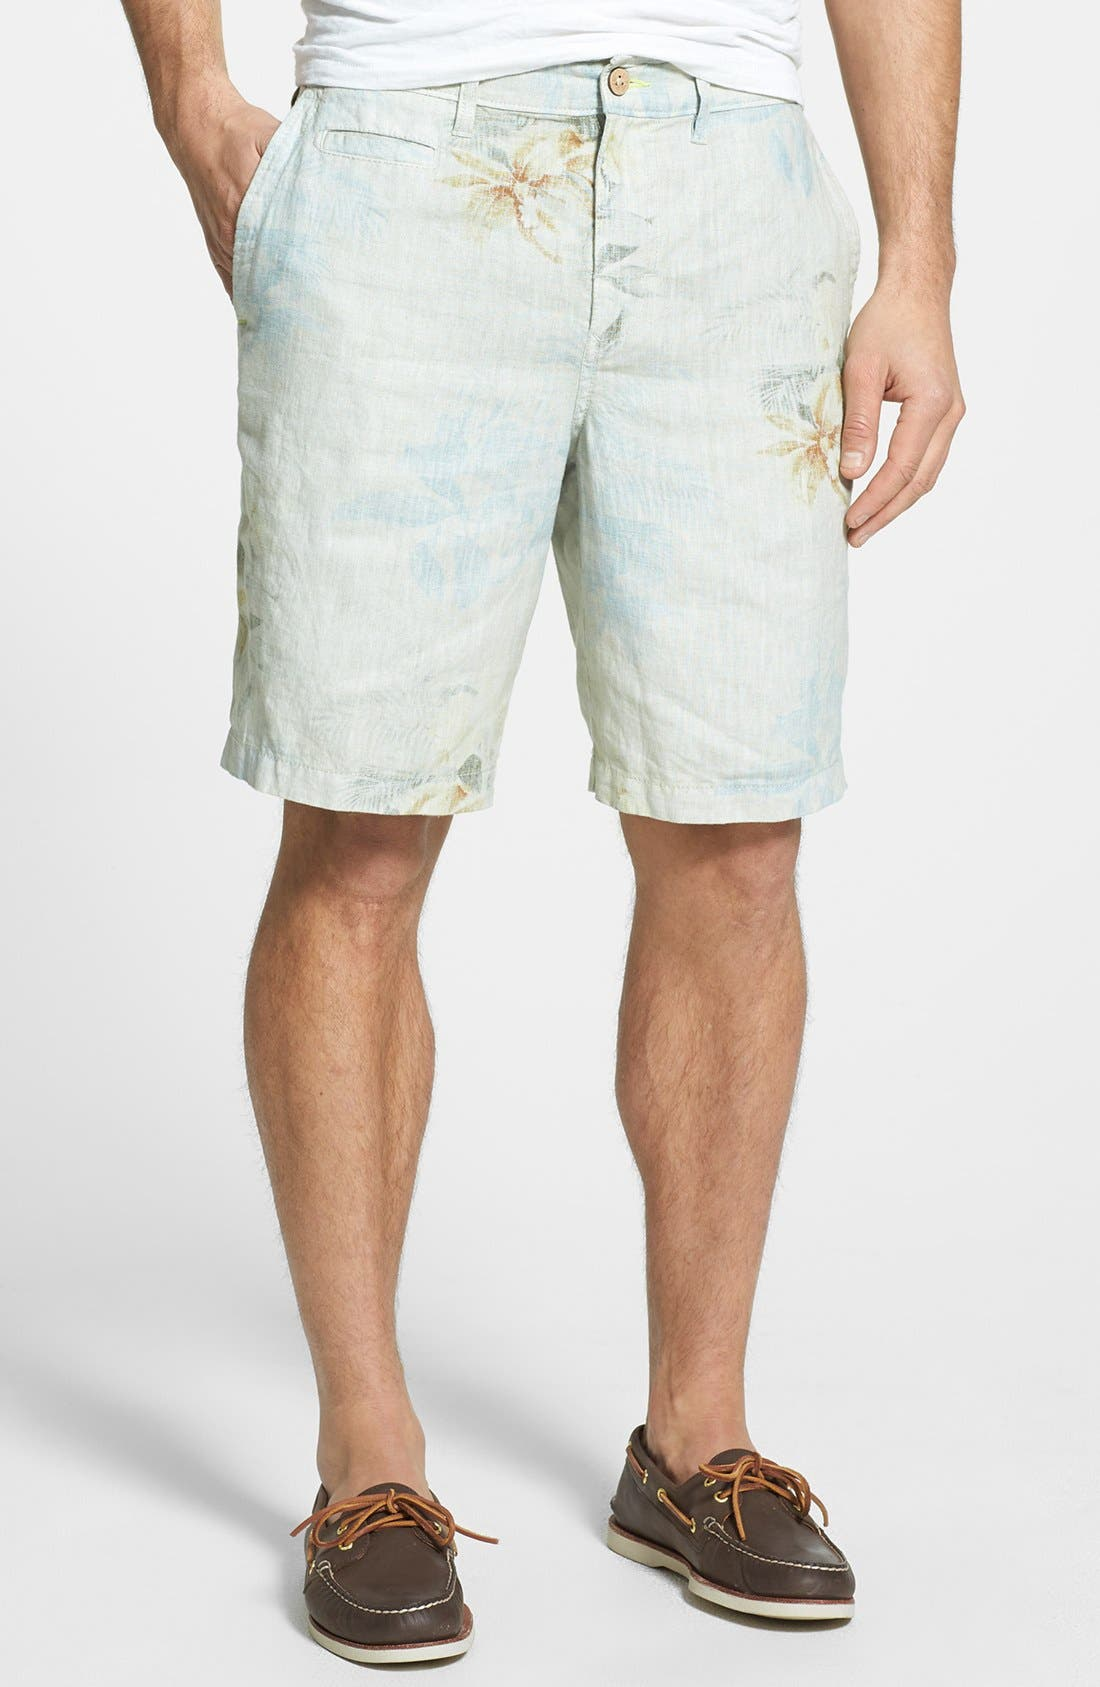 Alternate Image 1 Selected - Tommy Bahama 'First Class' Flat Front Shorts